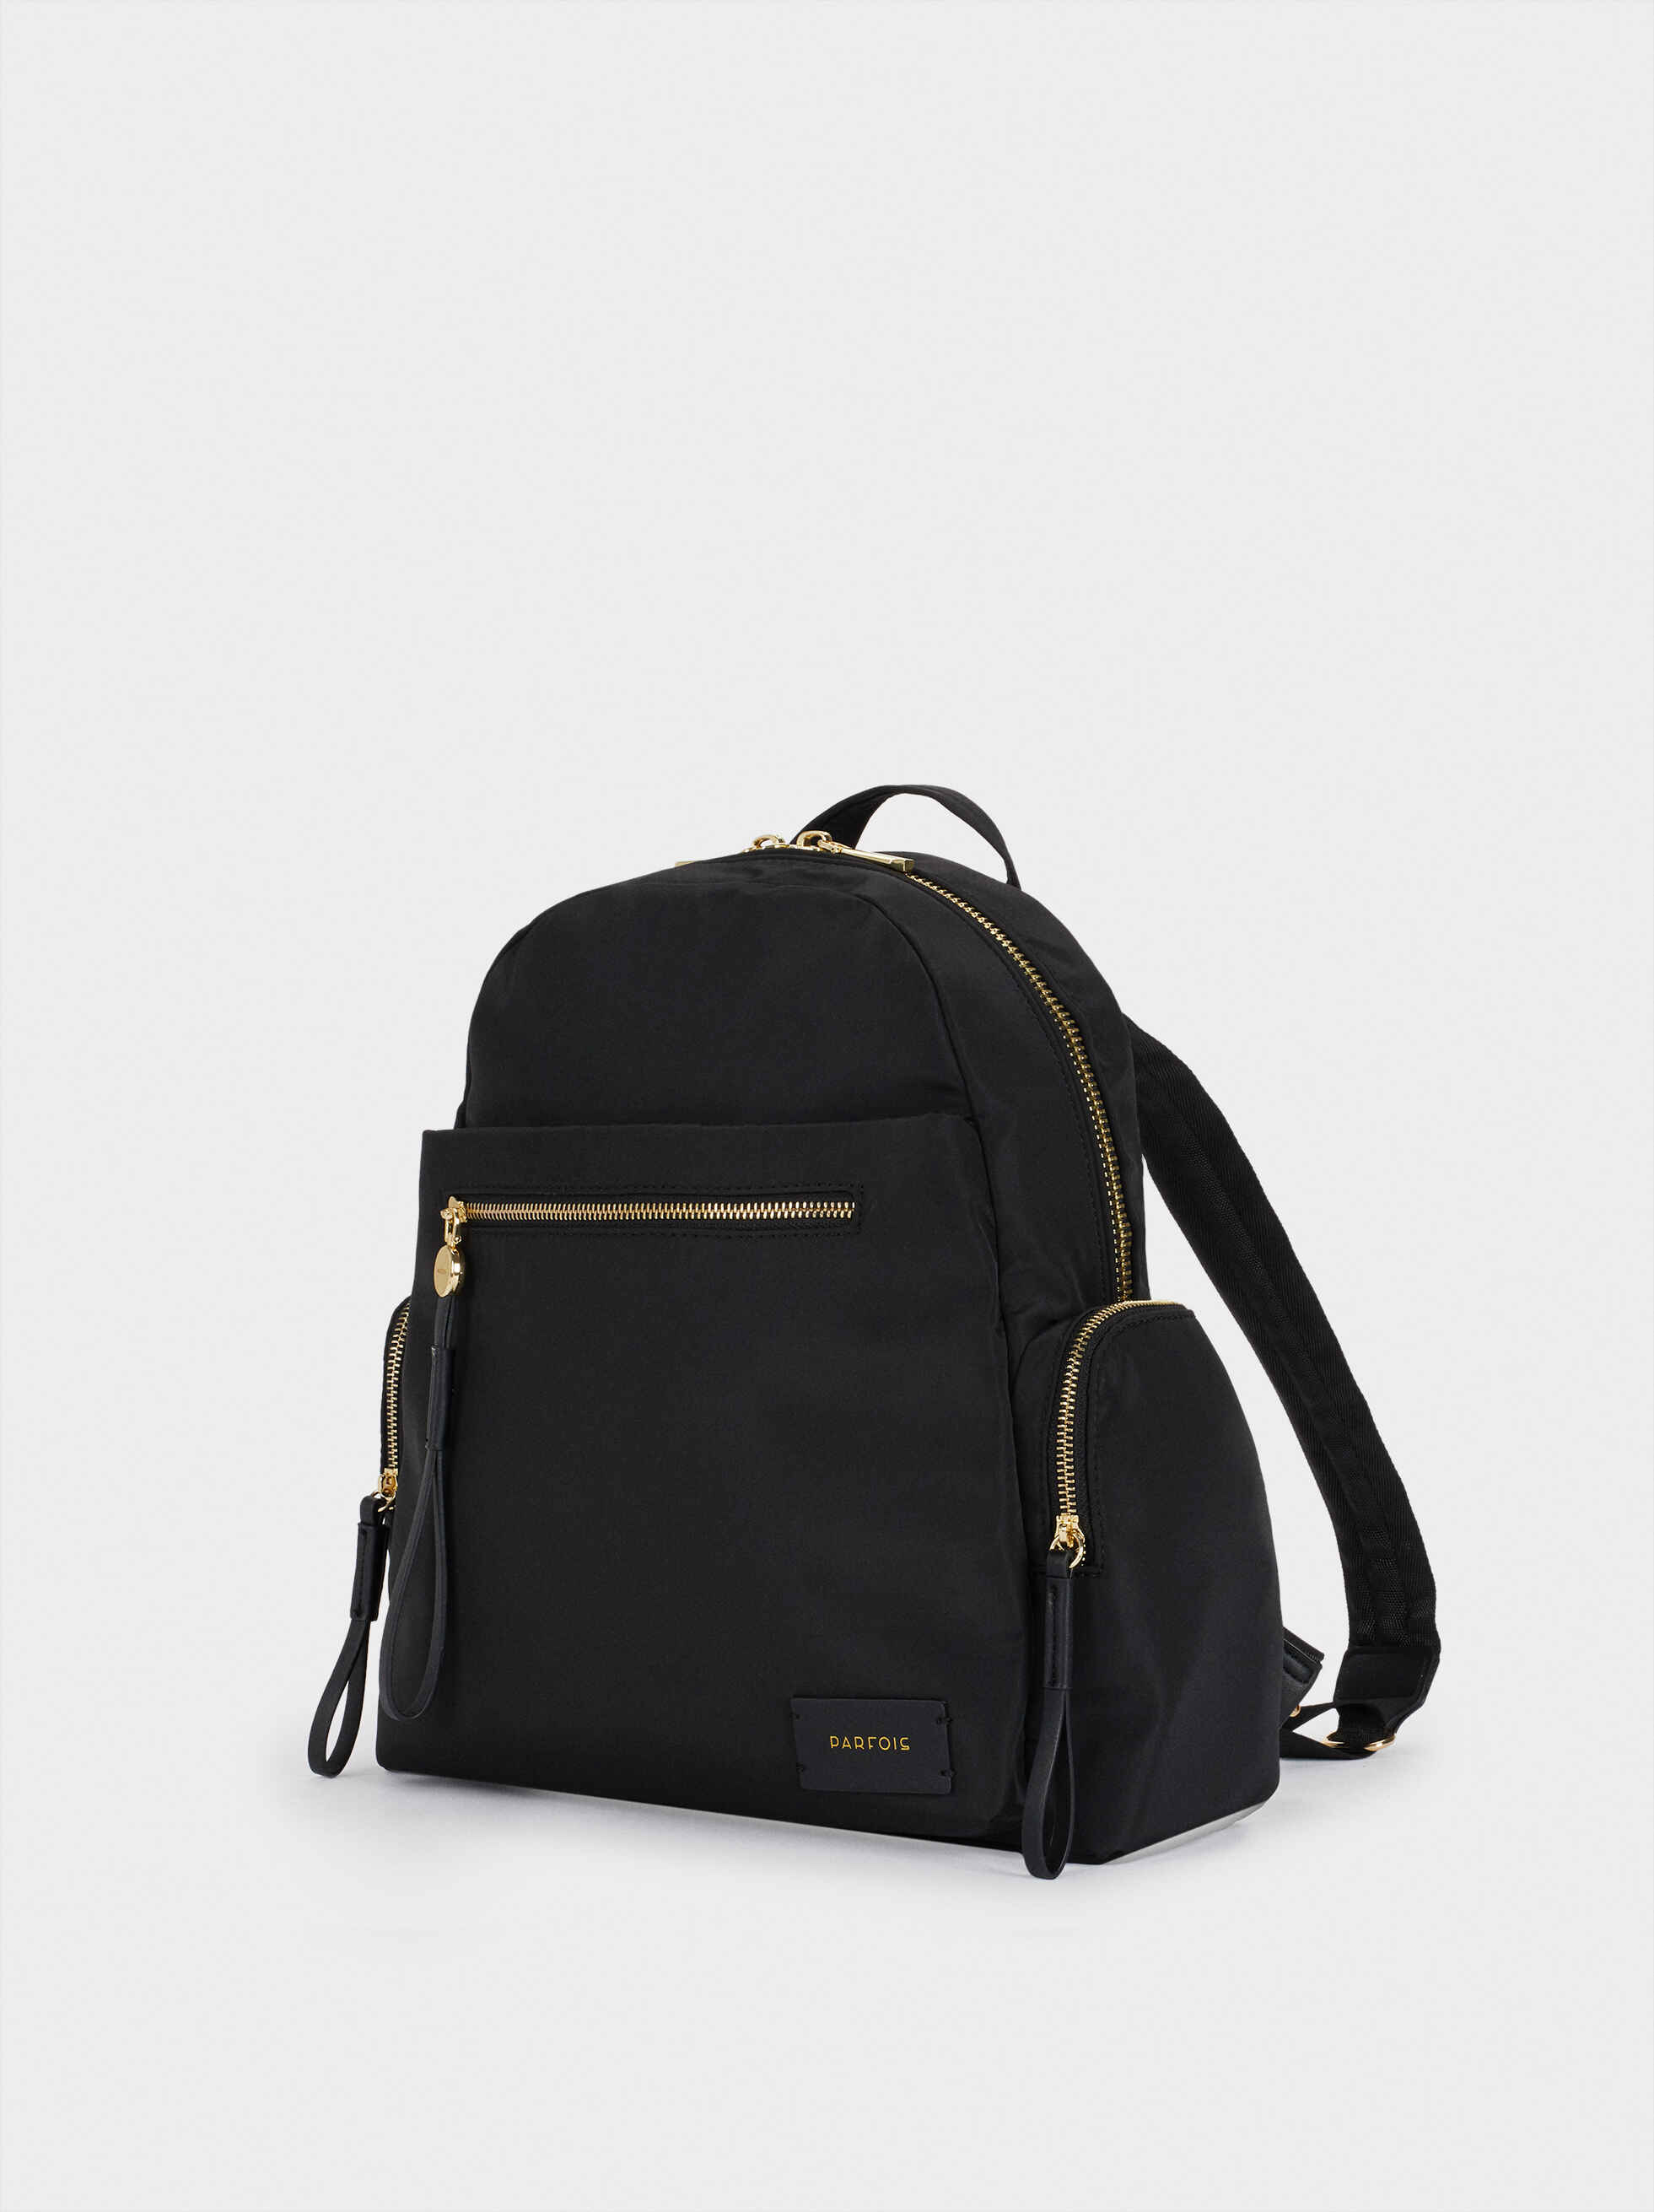 Nylon Backpack With Outside Pockets, Black, hi-res